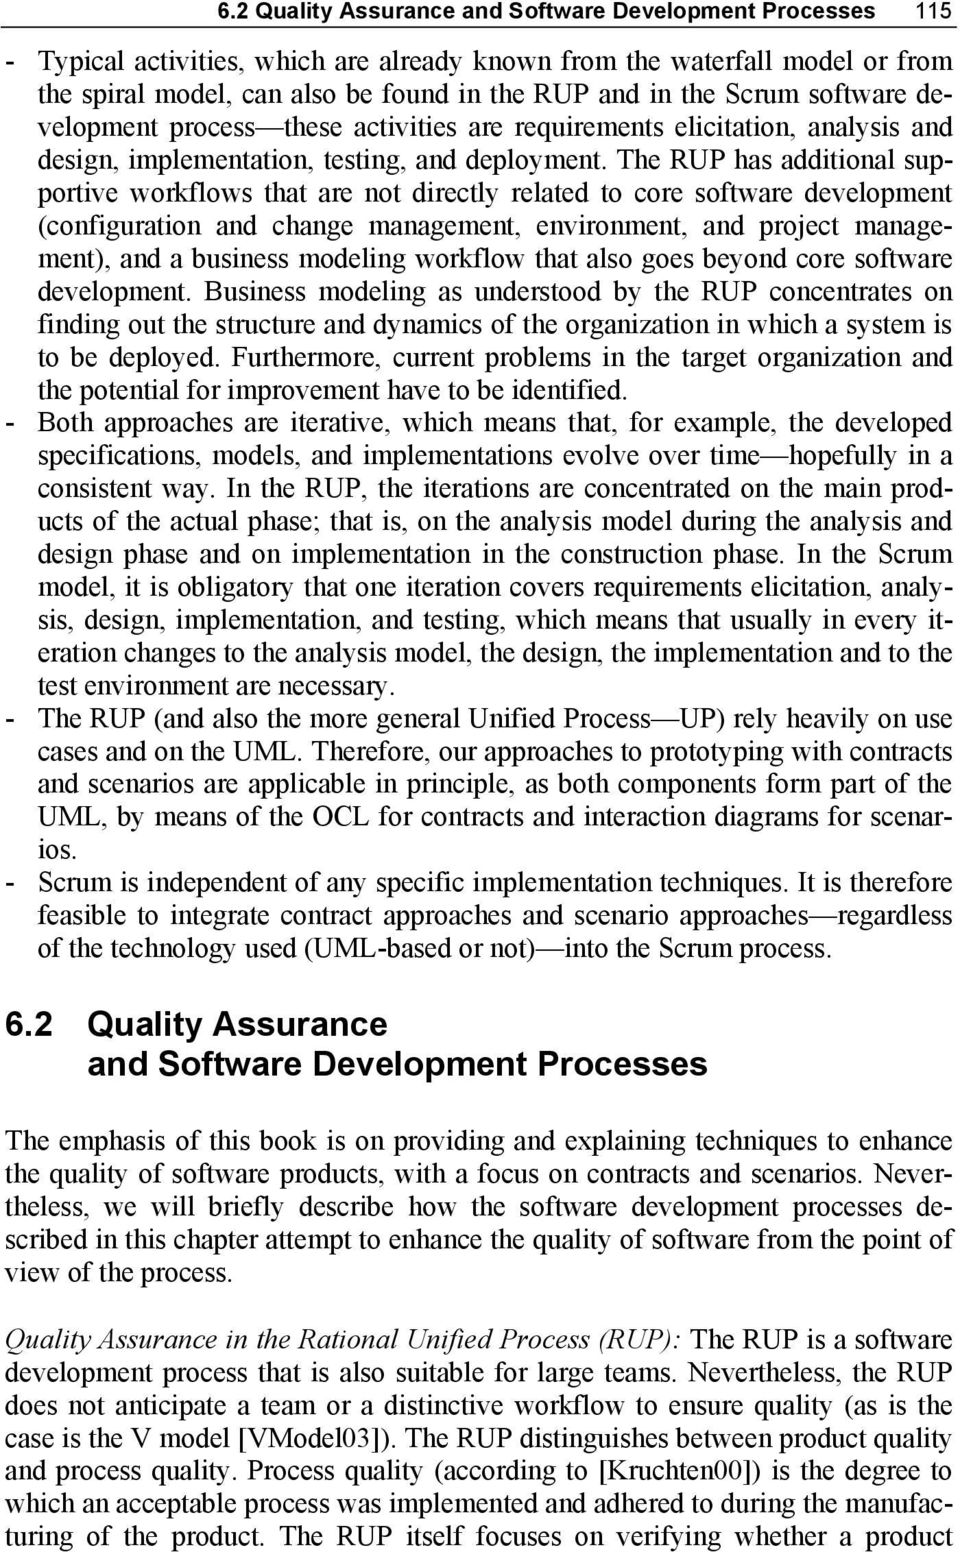 The RUP has additional supportive workflows that are not directly related to core software development (configuration and change management, environment, and project management), and a business